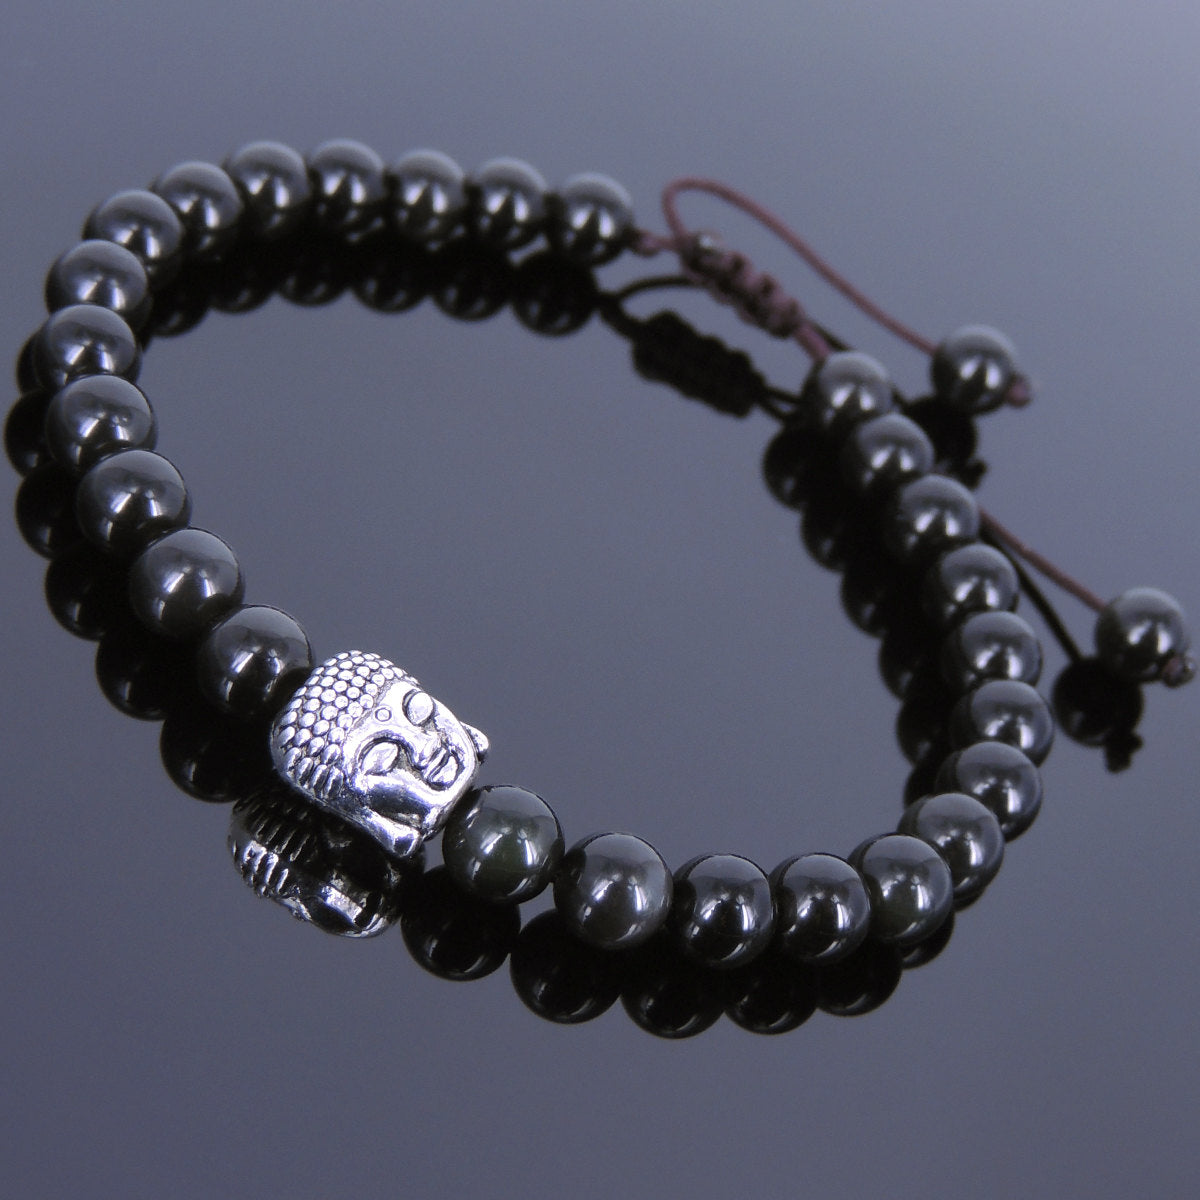 6mm Rainbow Black Obsidian Adjustable Braided Stone Bracelet with Tibetan Silver Sakyamuni Buddha Bead - Handmade by Gem & Silver TSB112